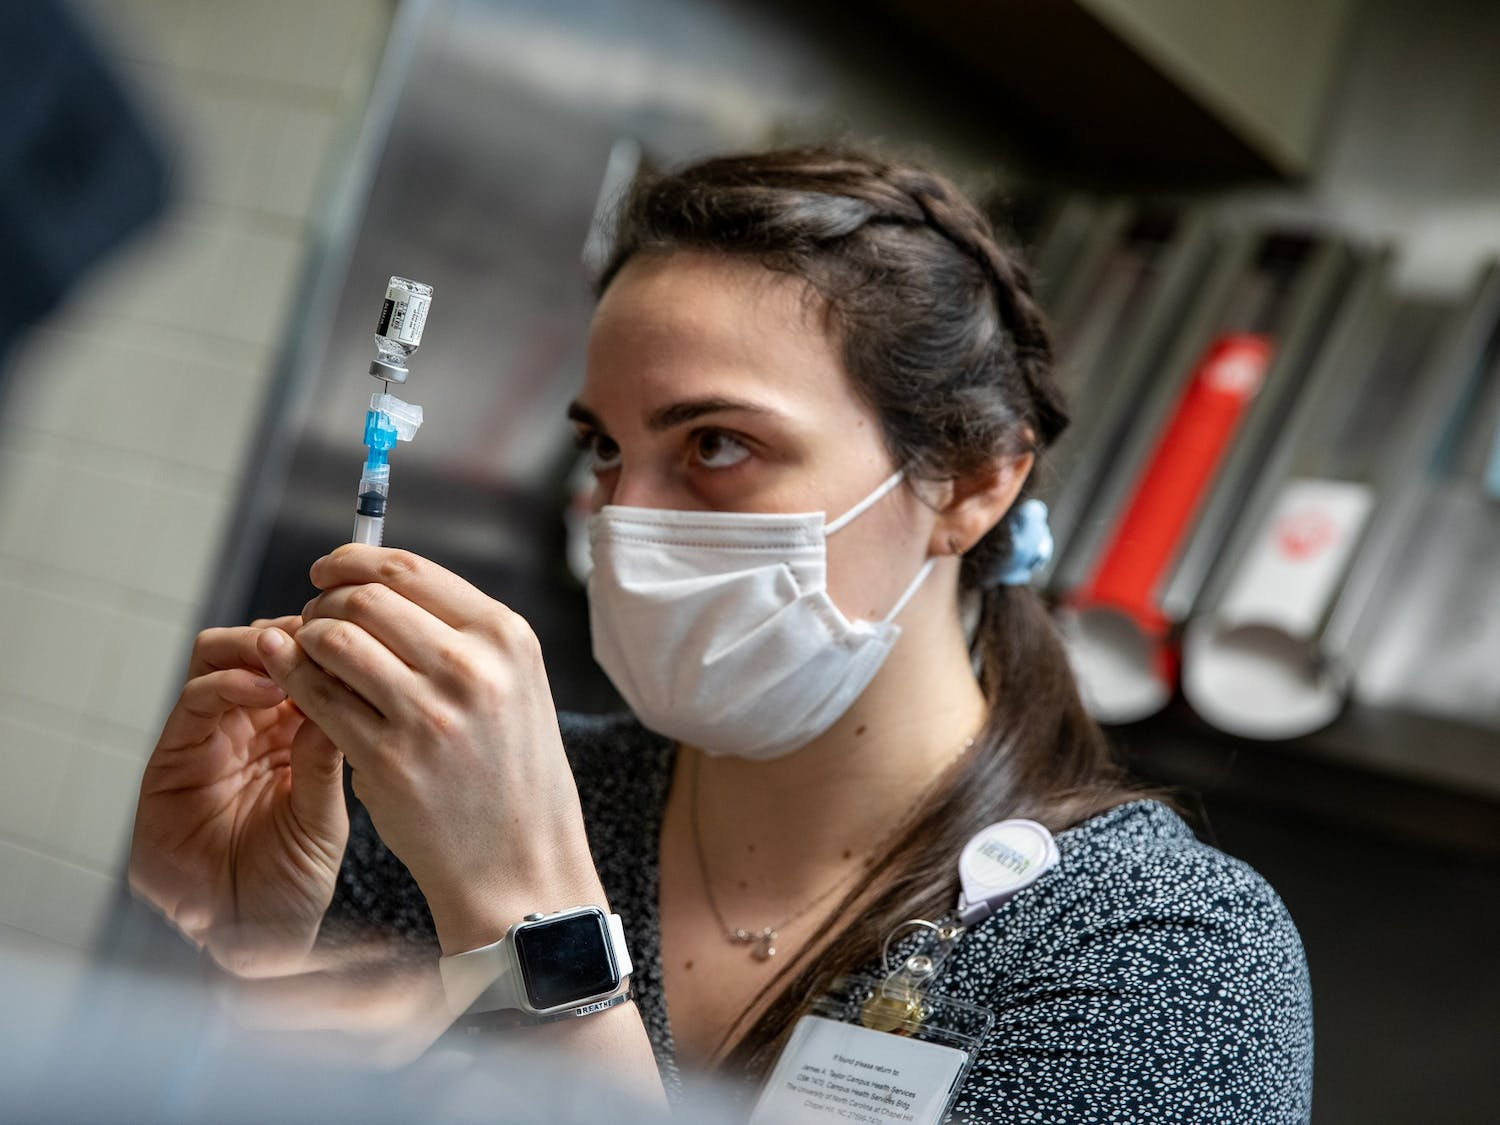 A UNC pharmacist prepares a vaccine dose in the former Wendy's in the Student Union on March 31, 2021. As North Carolina began to allow college students to receive coronavirus vaccines, UNC opened a clinic on campus where students can receive the Johnson & Johnson vaccine.